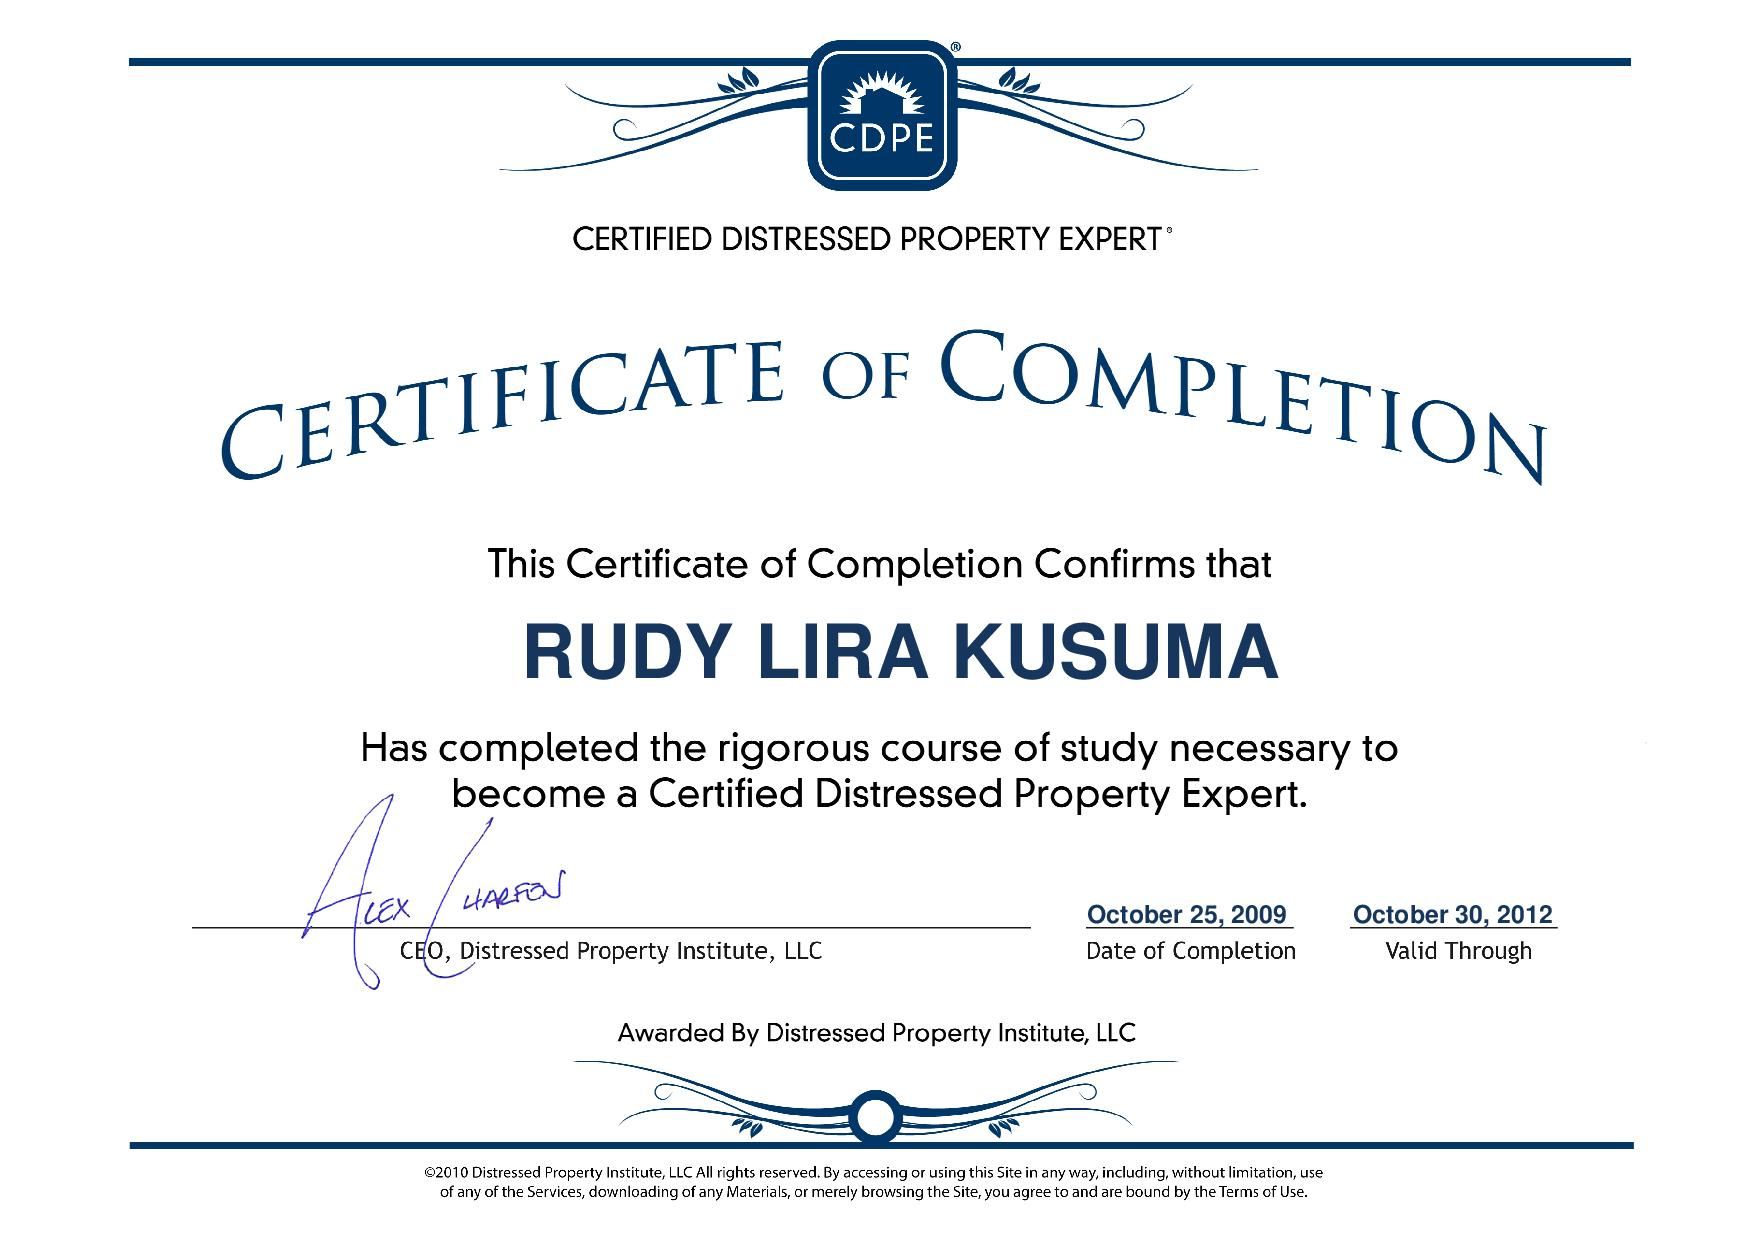 rudy lira kusuma certified distressed property expert